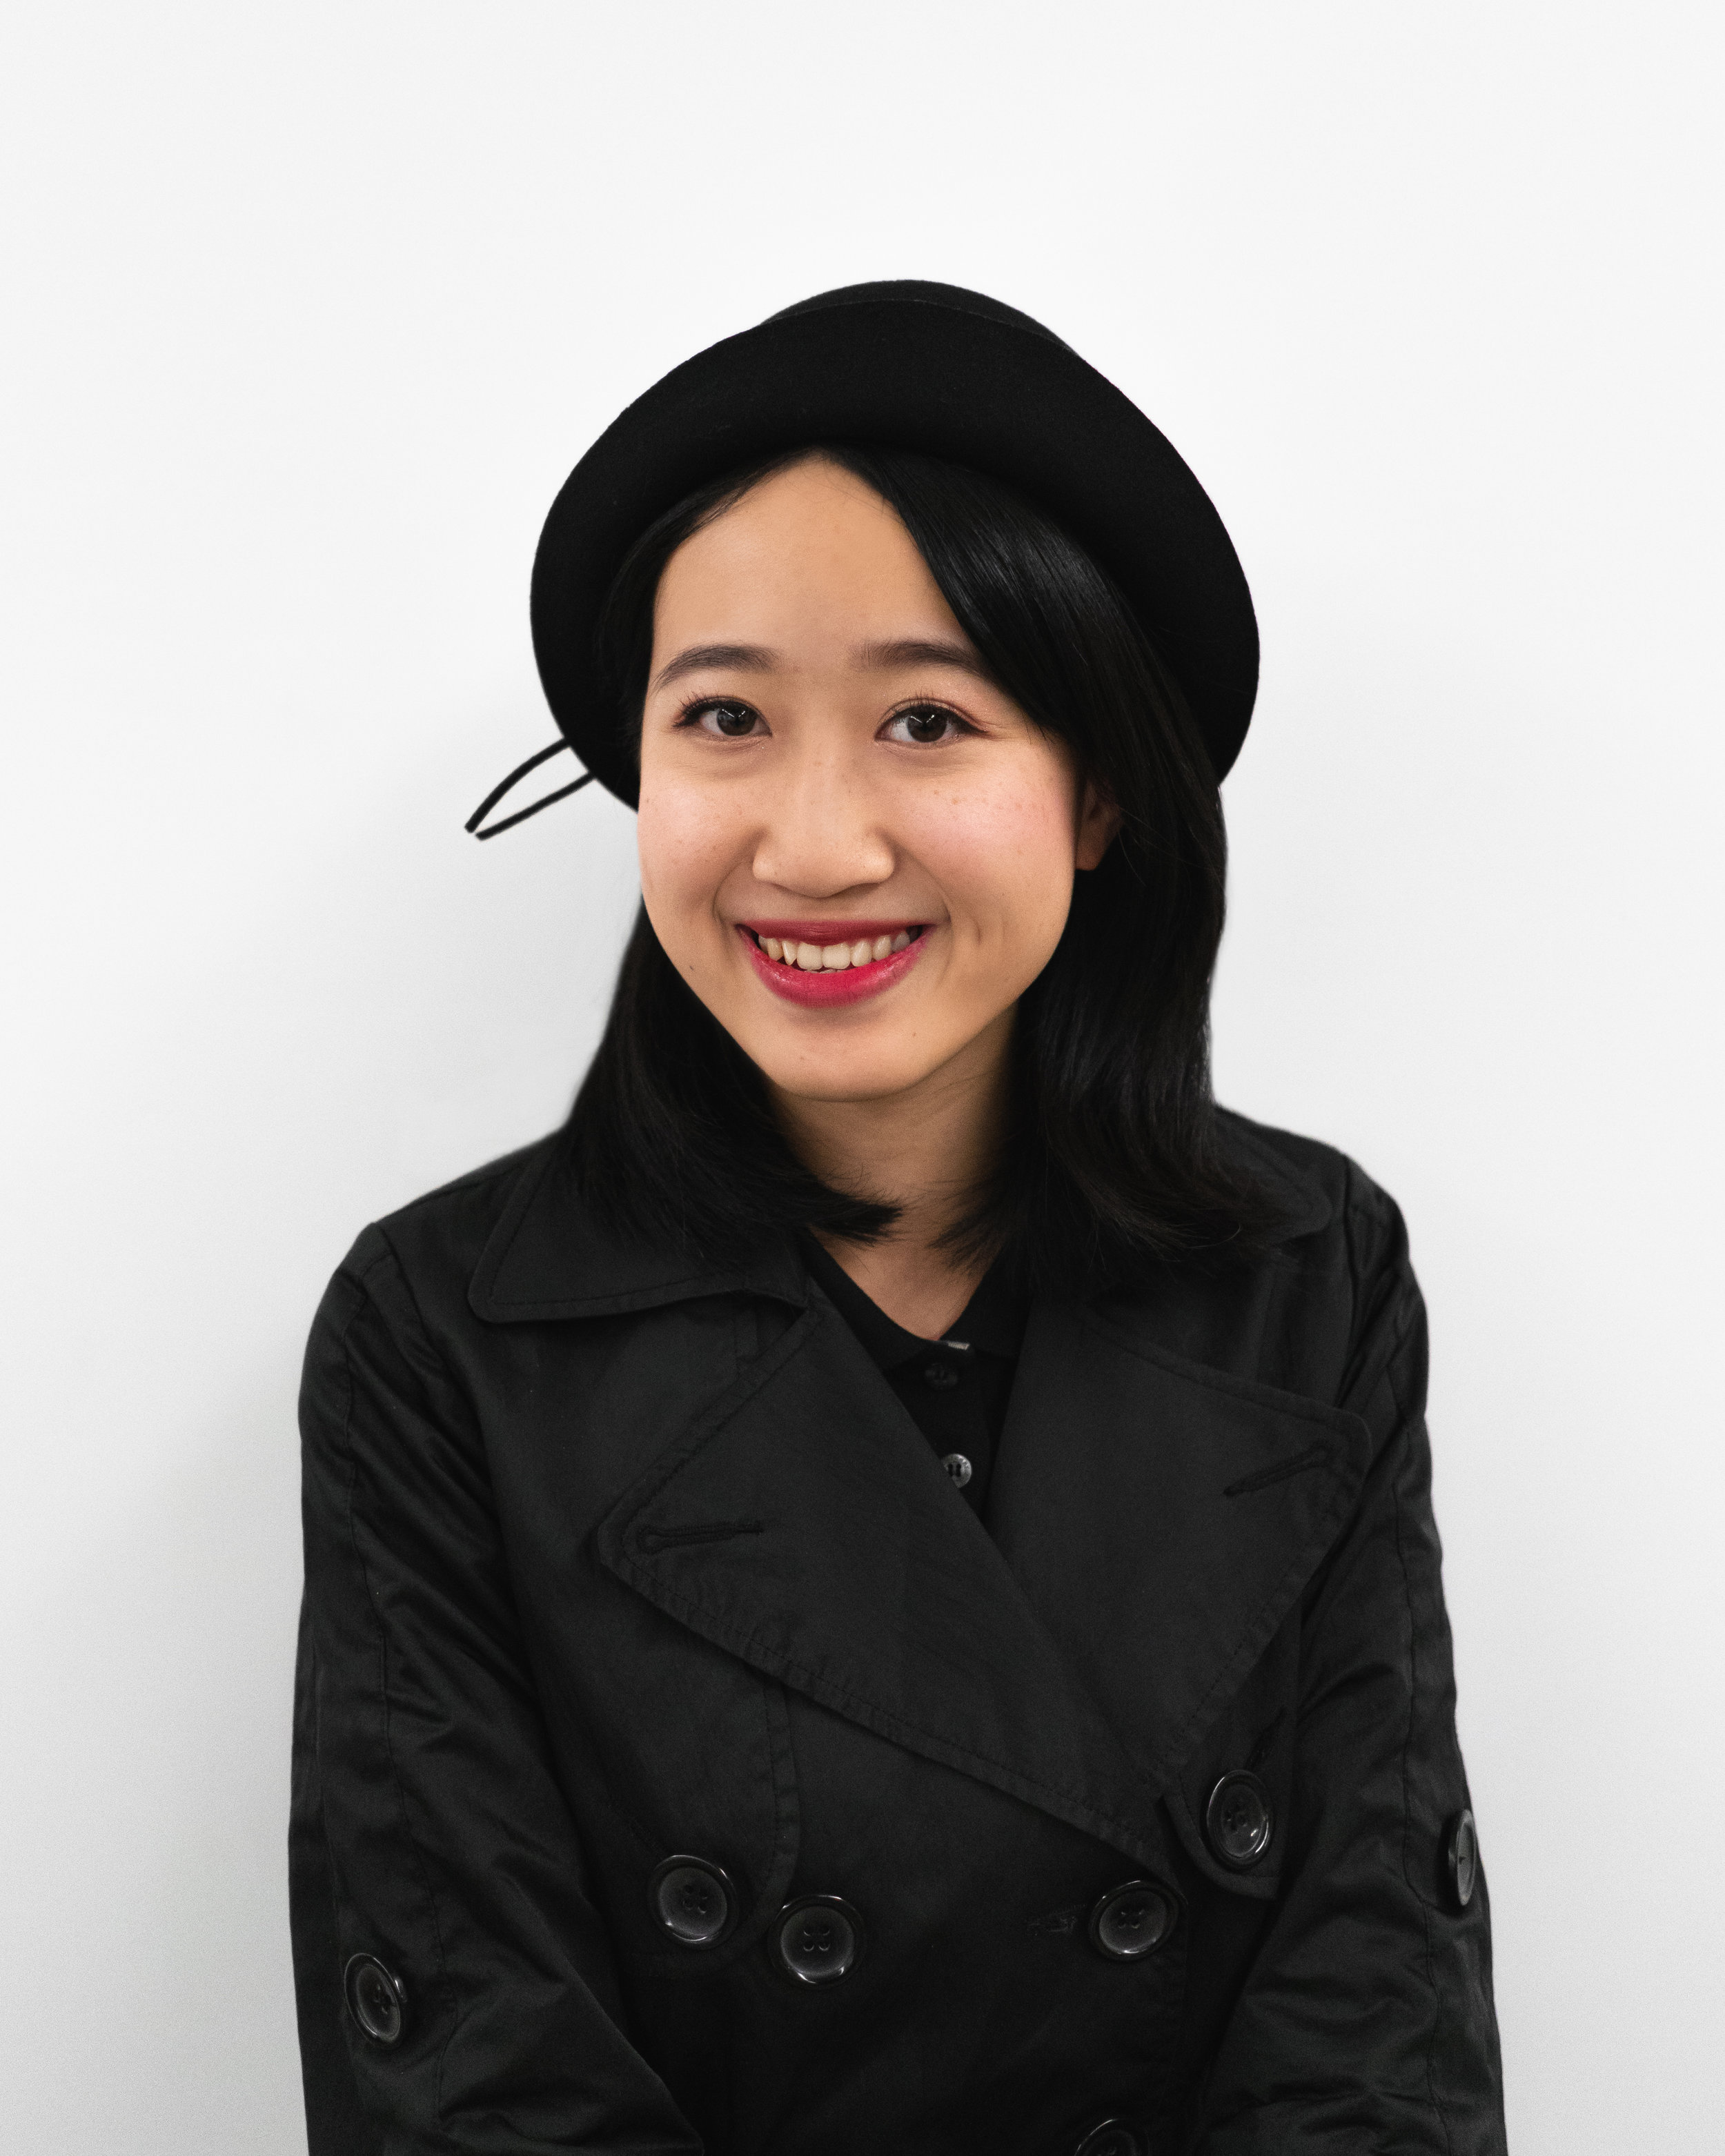 SANDY CHONG - Graphics Committee